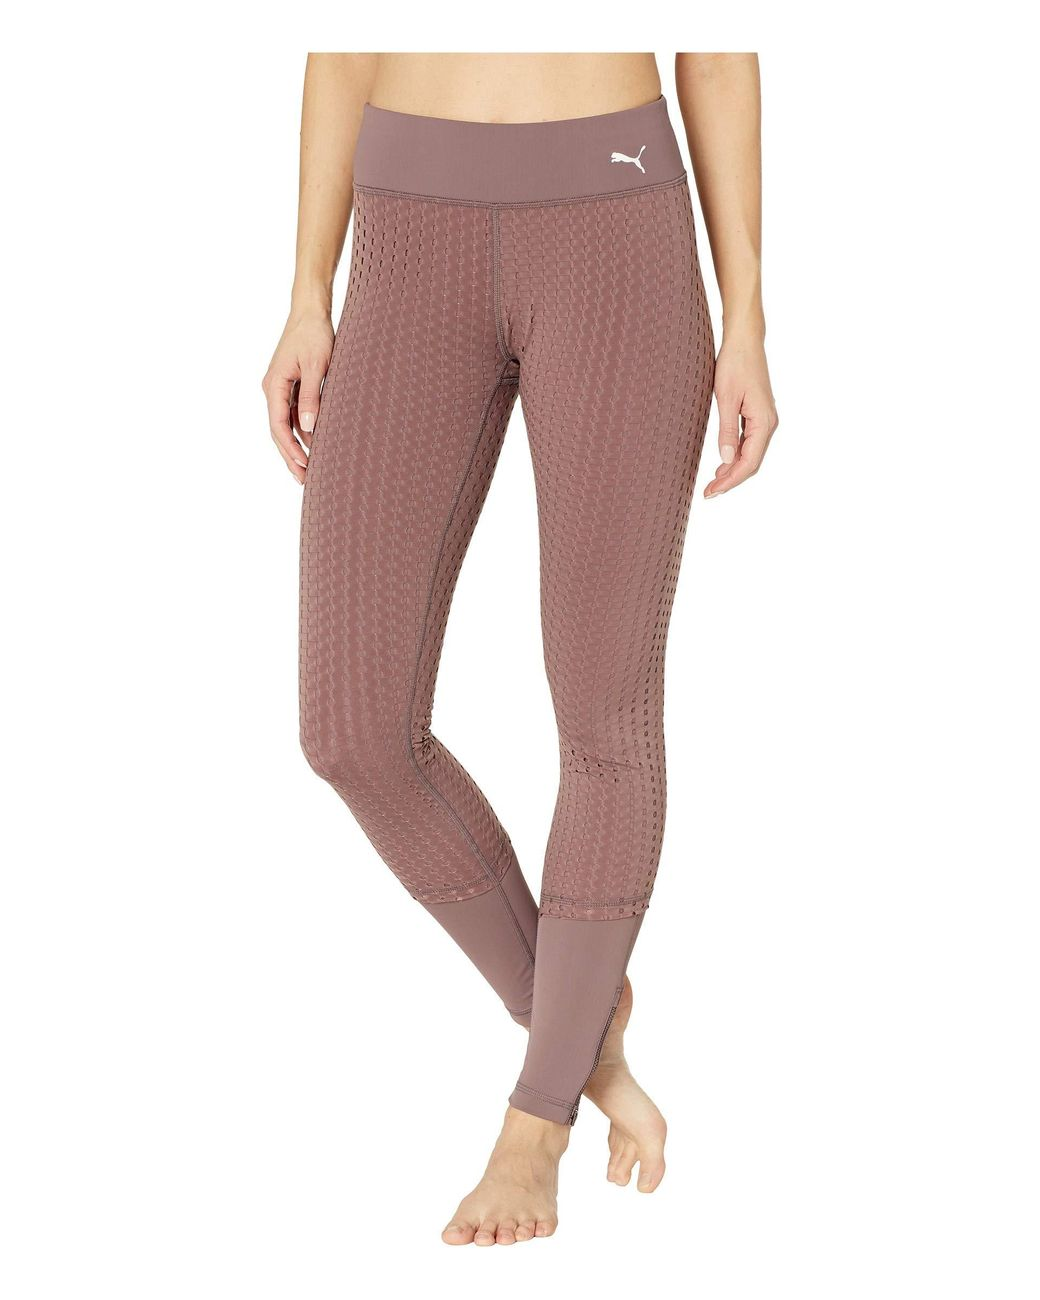 Puma Weave Tight Ladies Performance Tights Pants Trousers Bottoms Lightweight